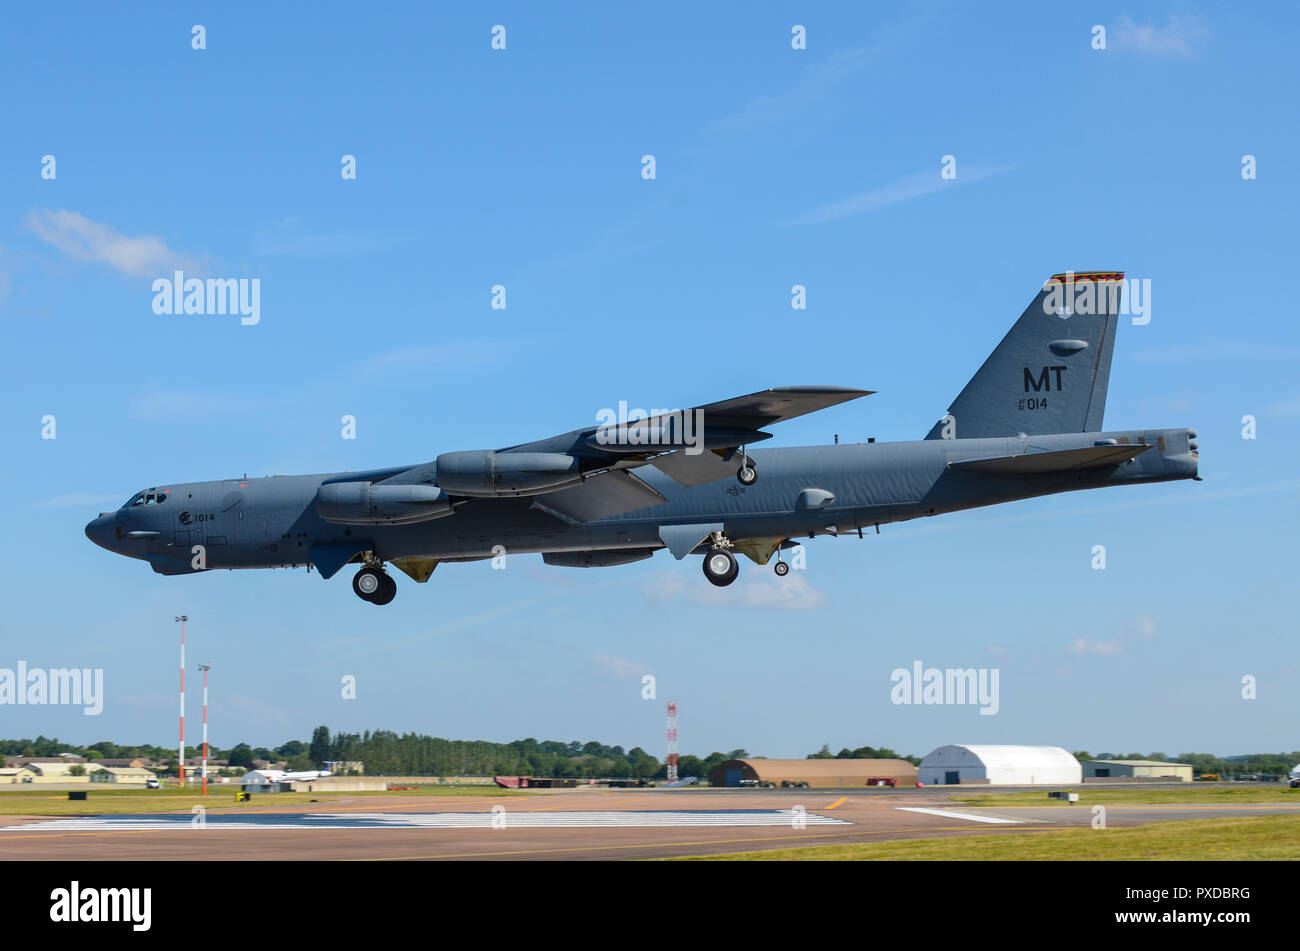 Boeing B-52 Stratofortress nuclear bomber landing at RAF Fairford for RIAT Royal International Air Tattoo. Space for copy Stock Photo